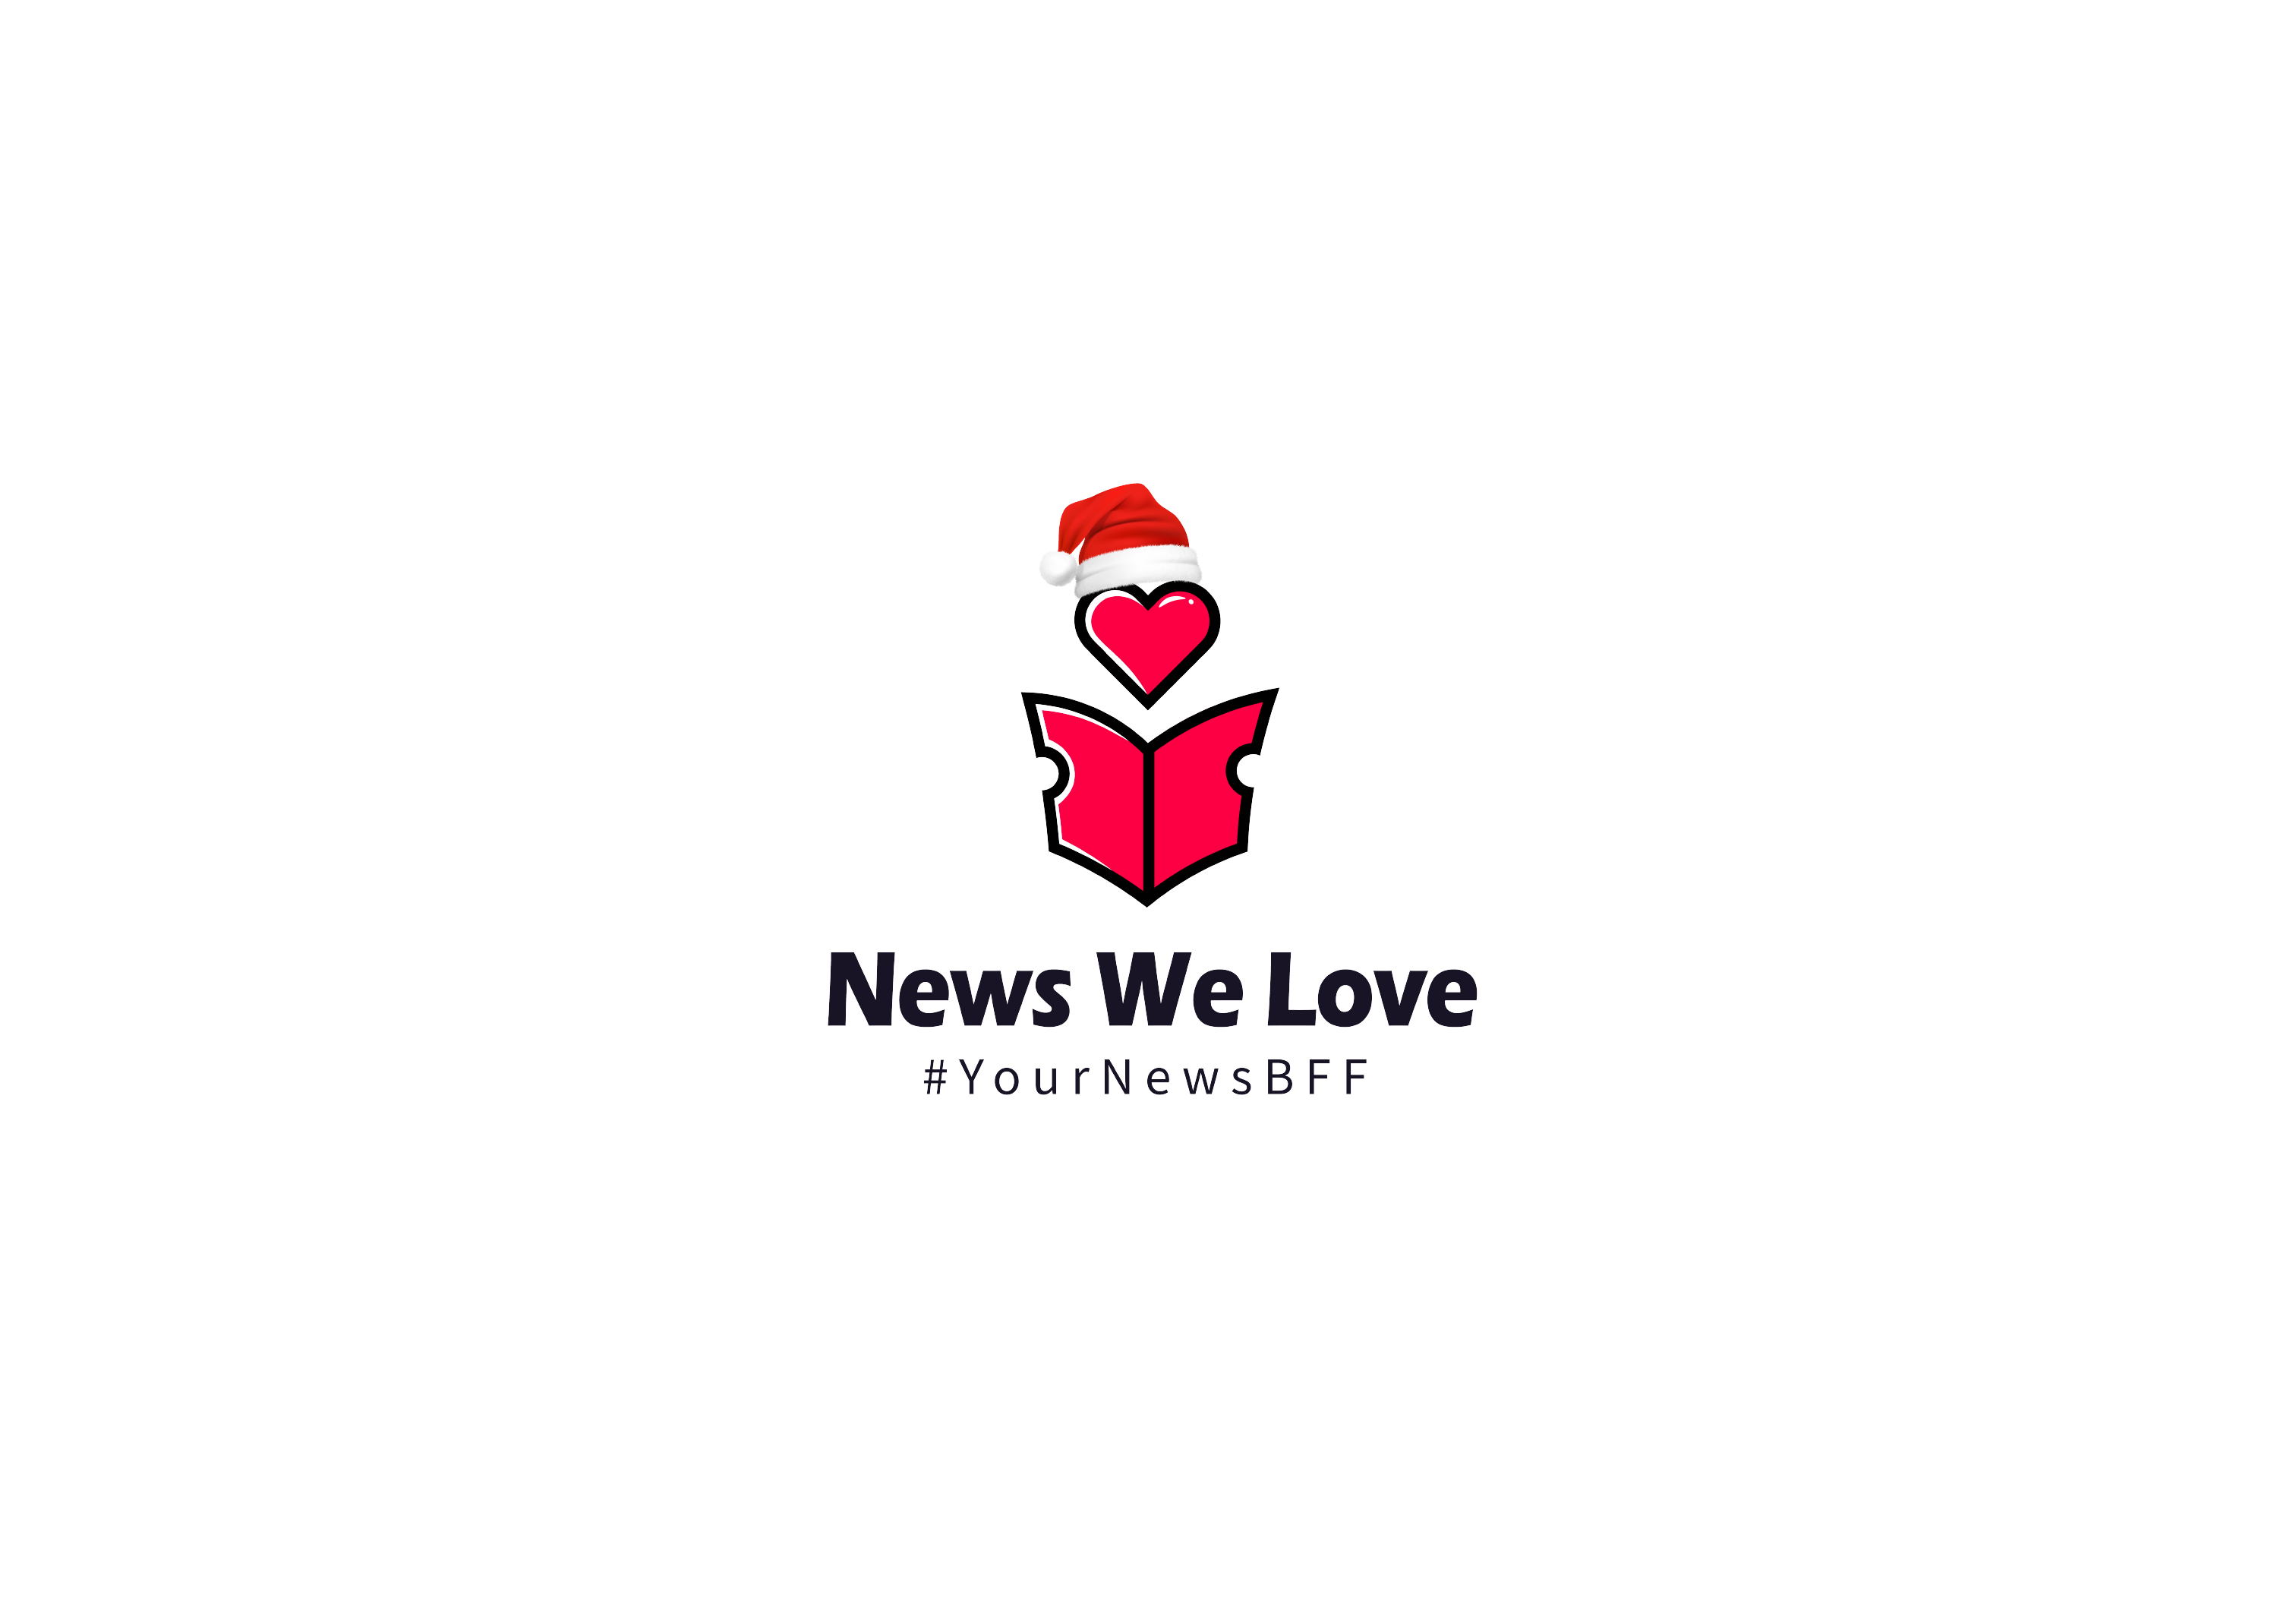 News We Love